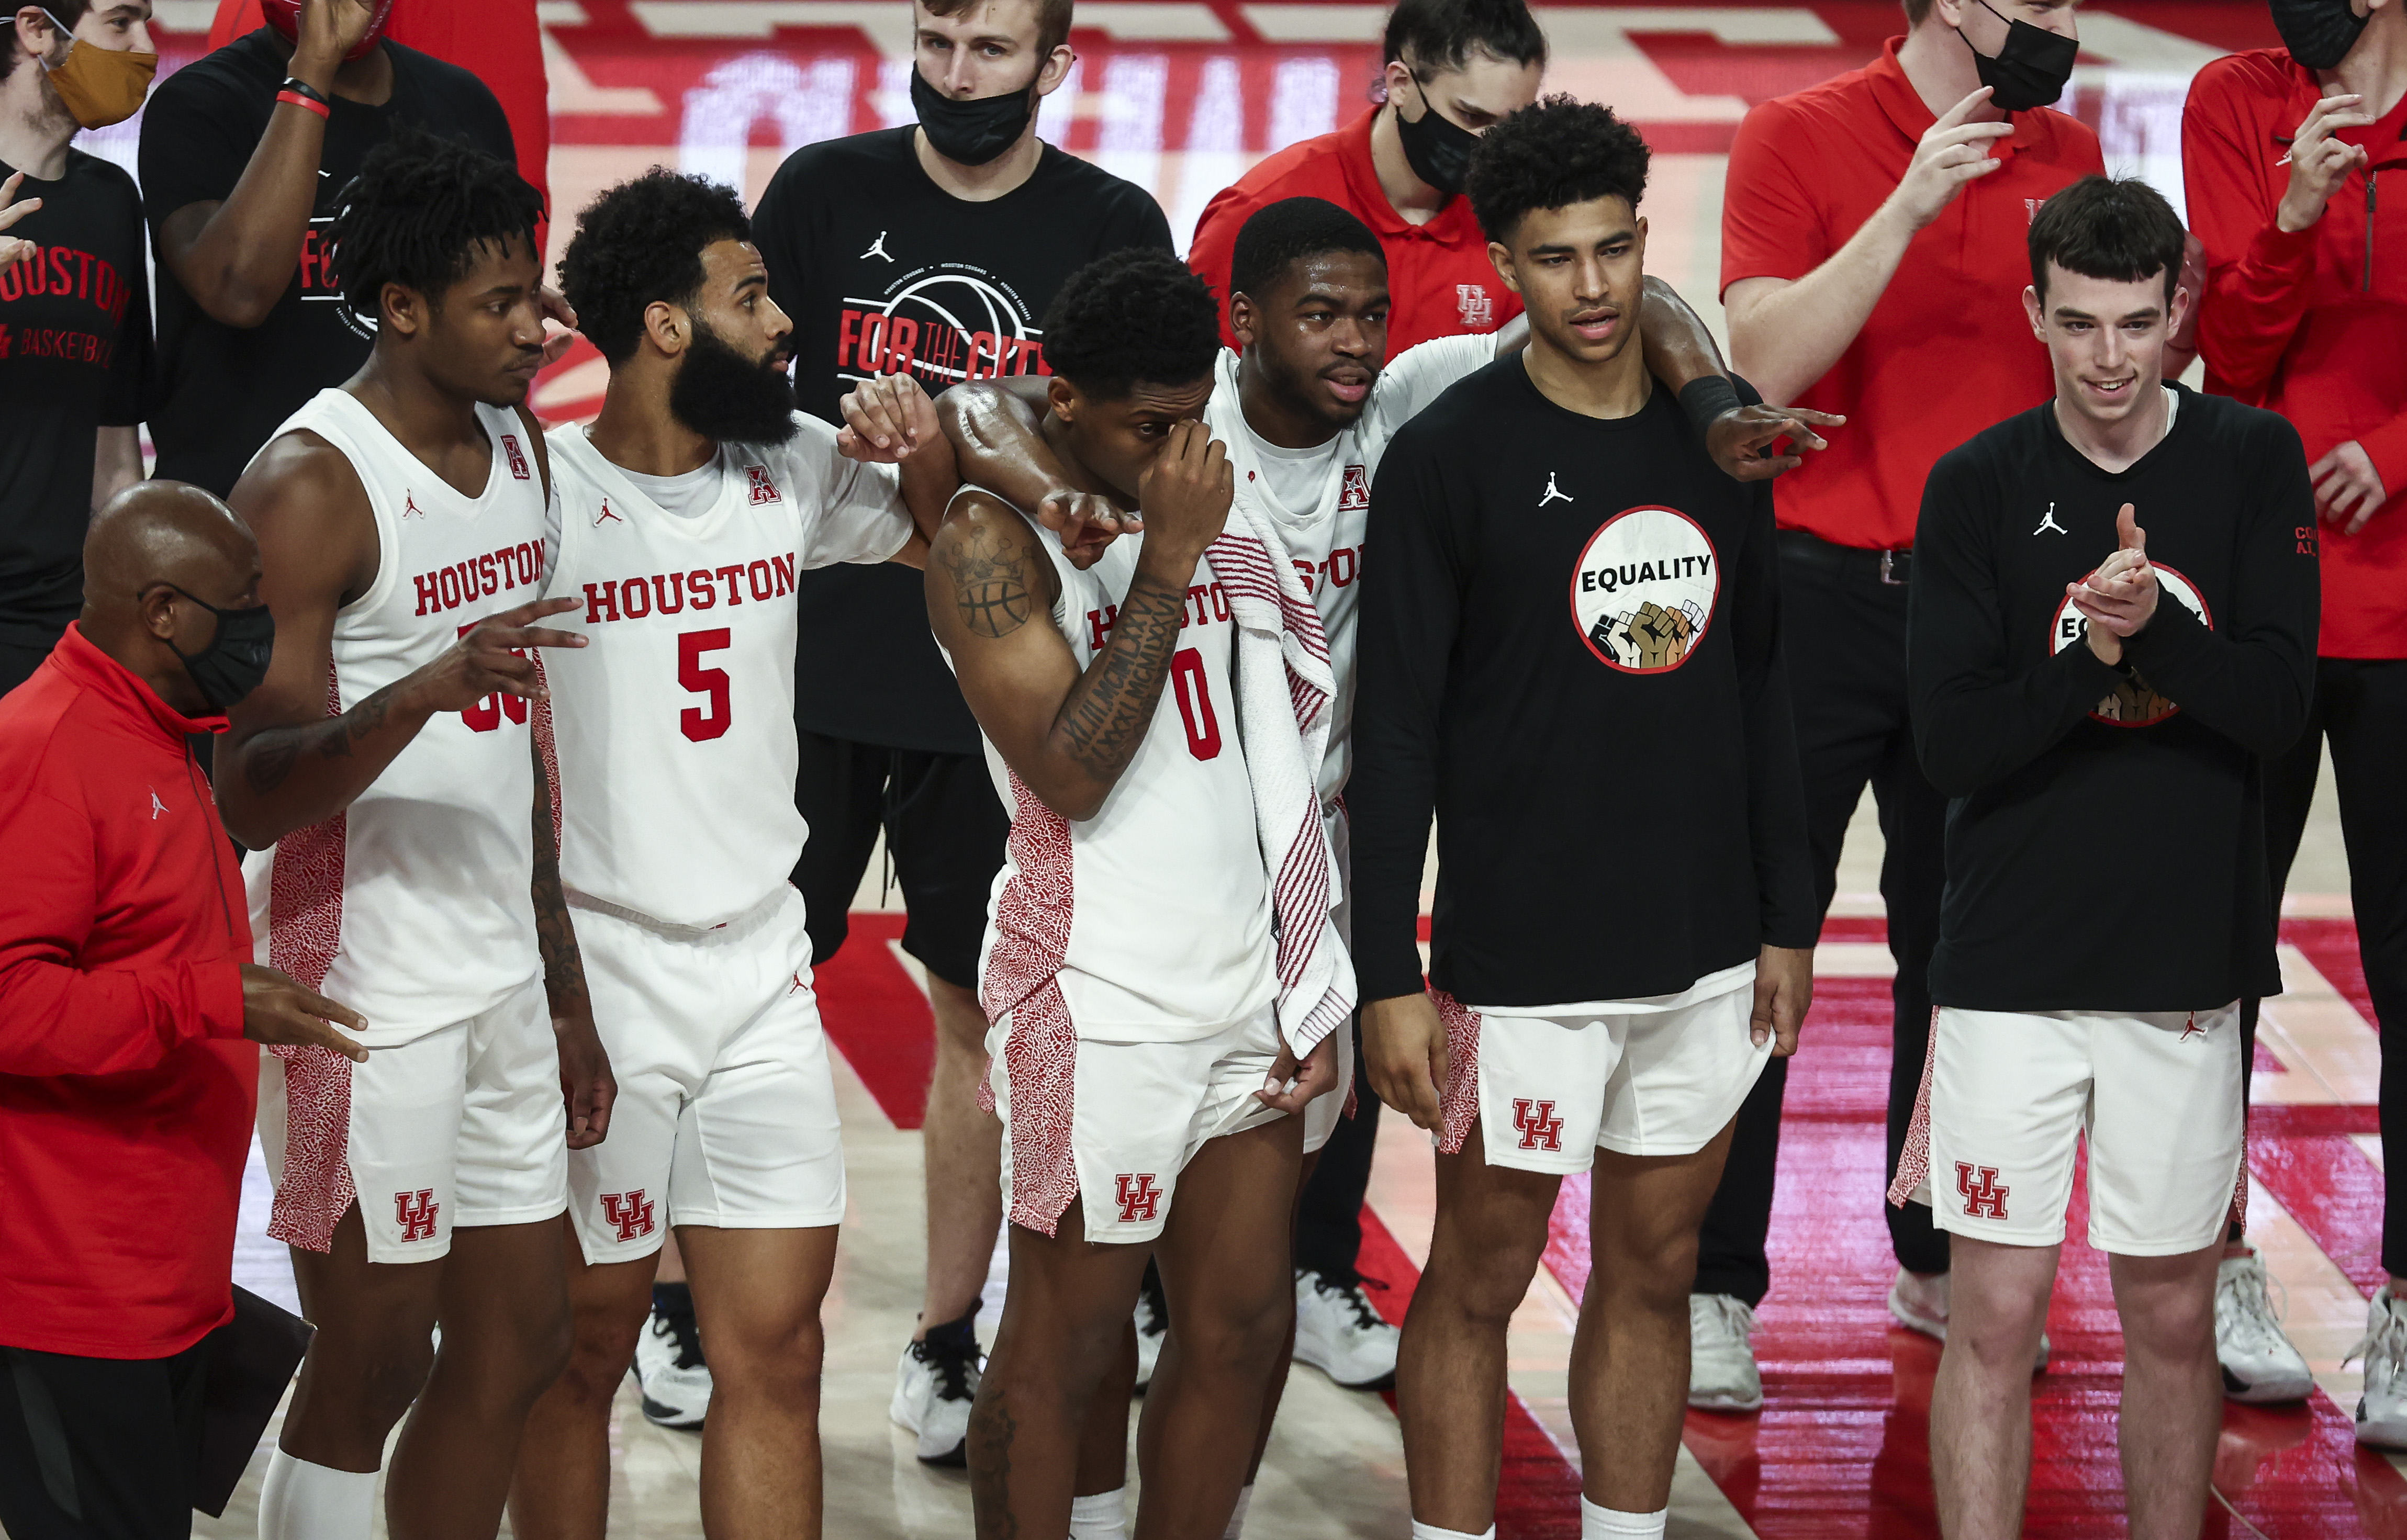 Houston Cougars players stand on the court after the game against the South Florida Bulls at Fertitta Center.